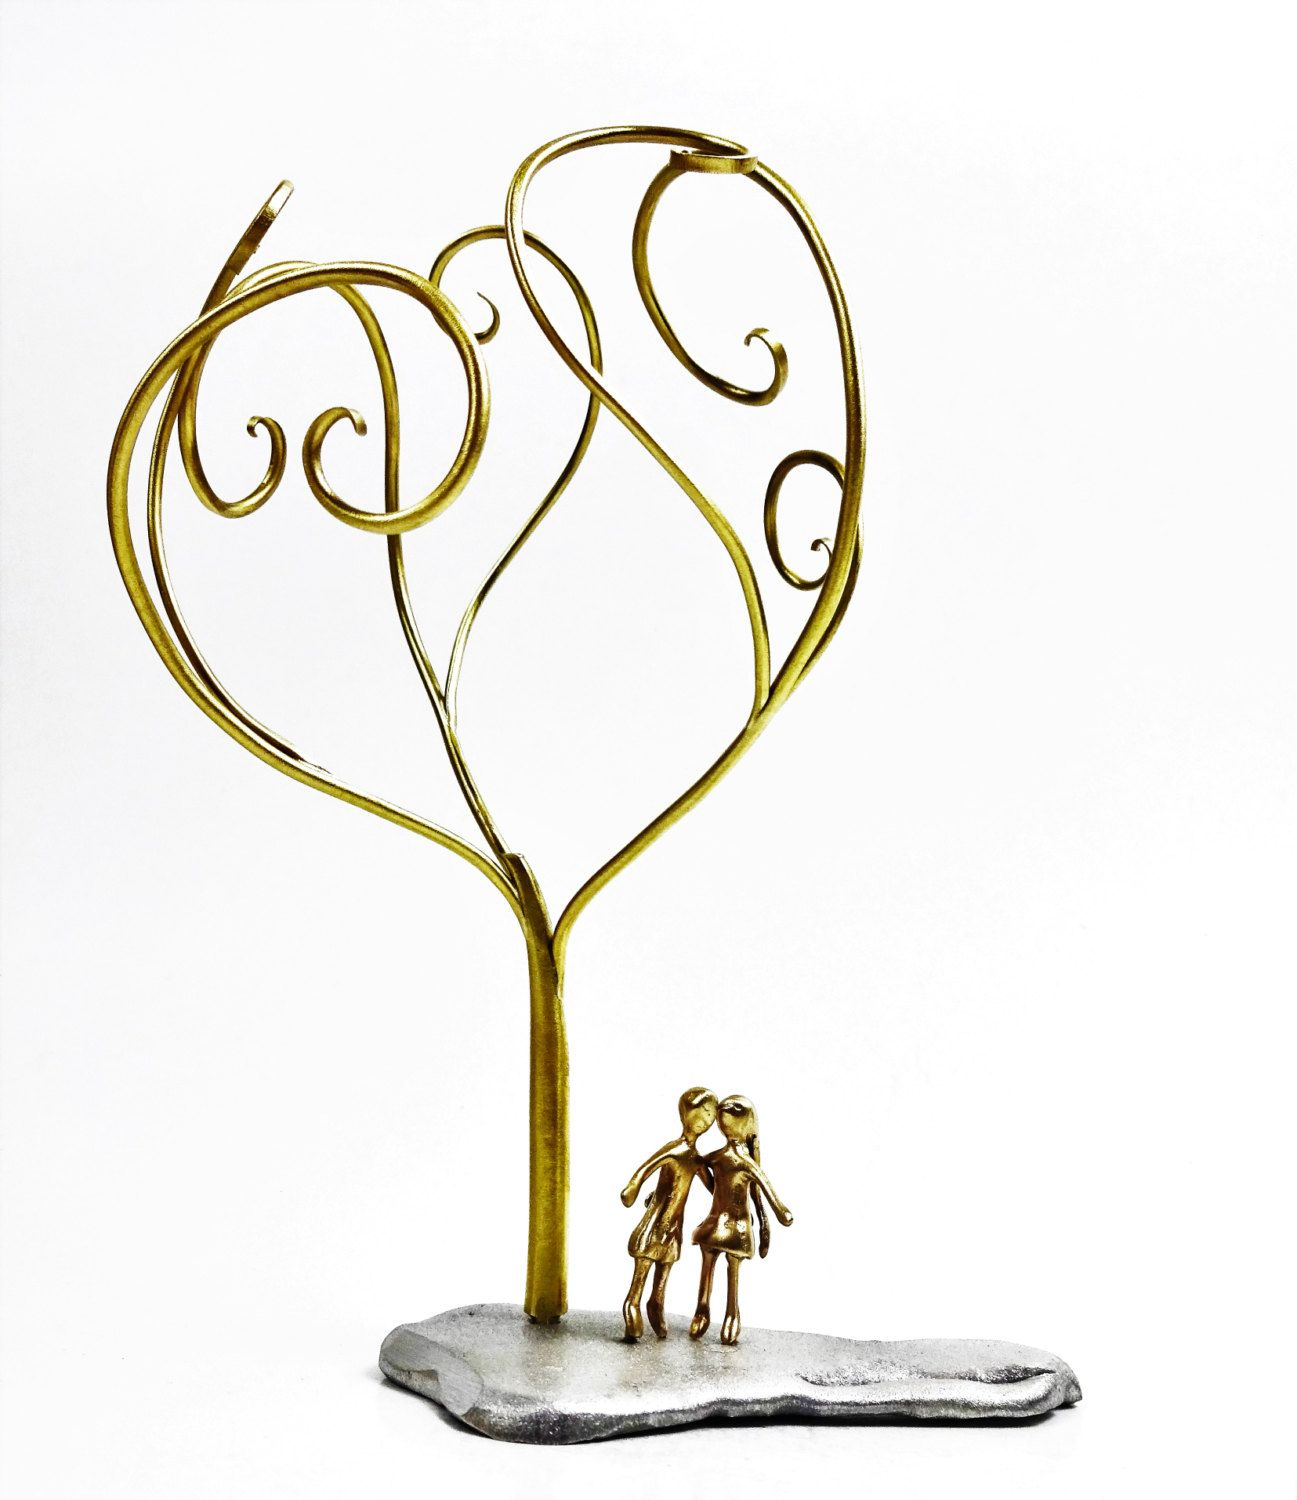 Bronze tree with a couple underneath. Home decoration